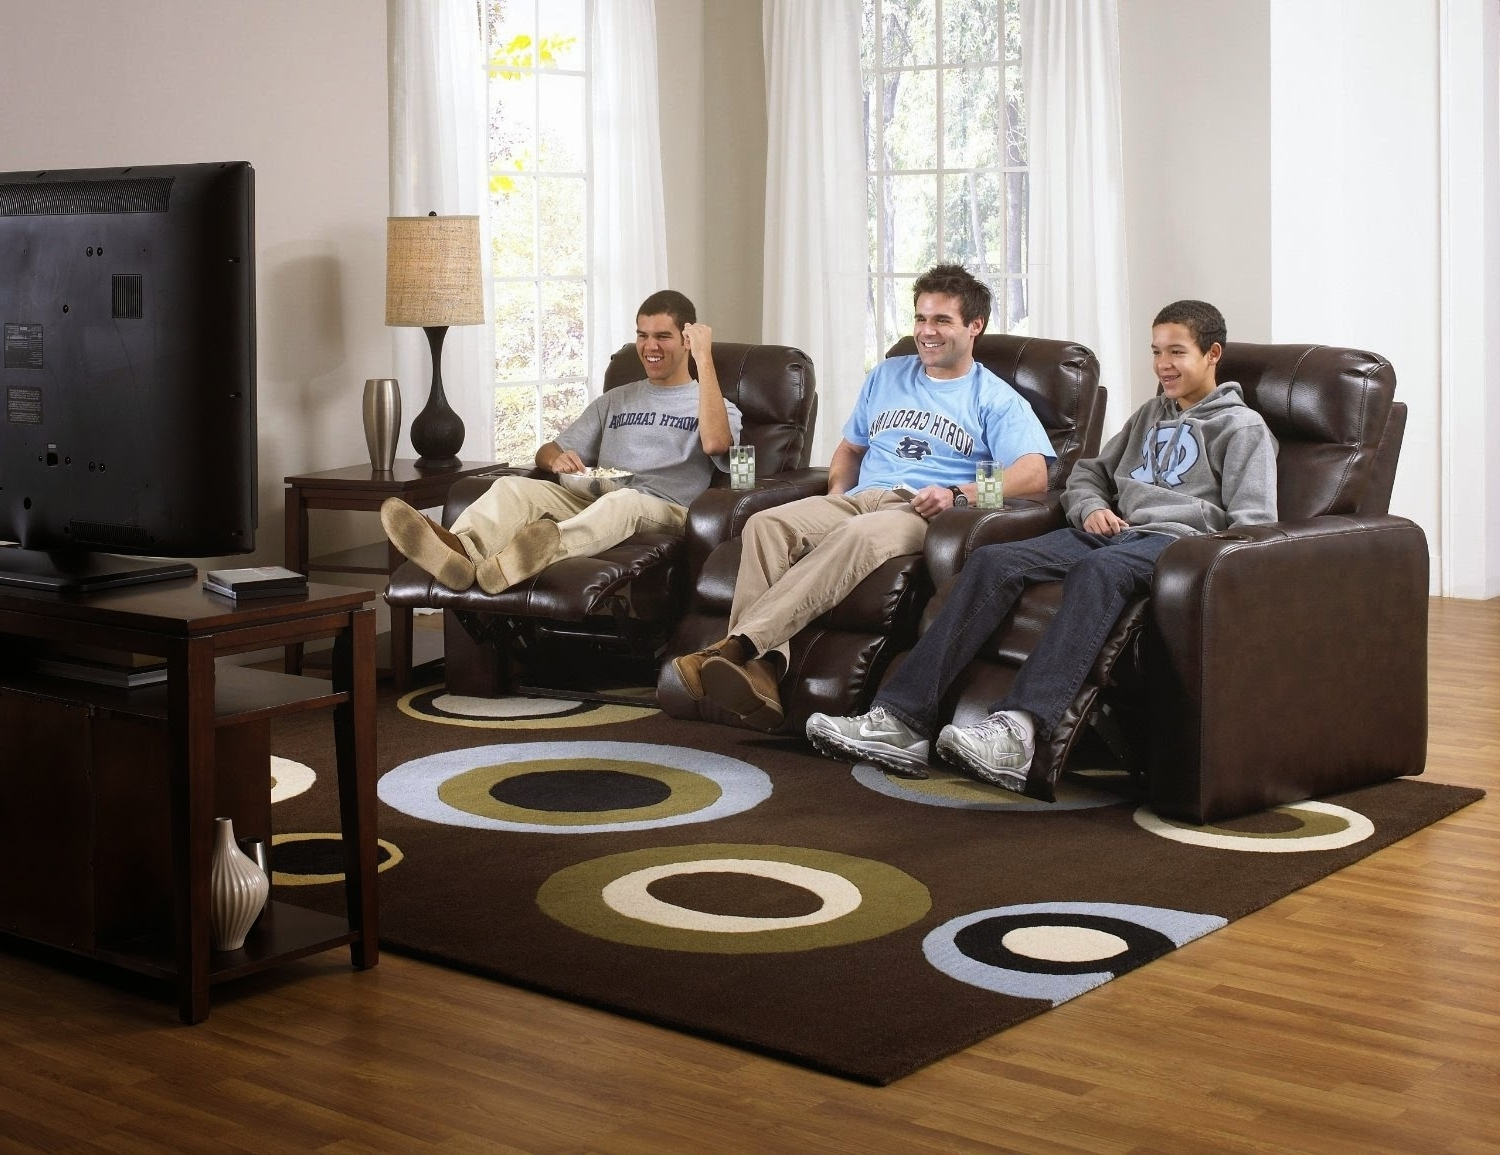 Curved Recliner Sofas For Preferred Leather Sofa Set With Recliner Reclining Sofa Sets Sale Curved (View 2 of 15)